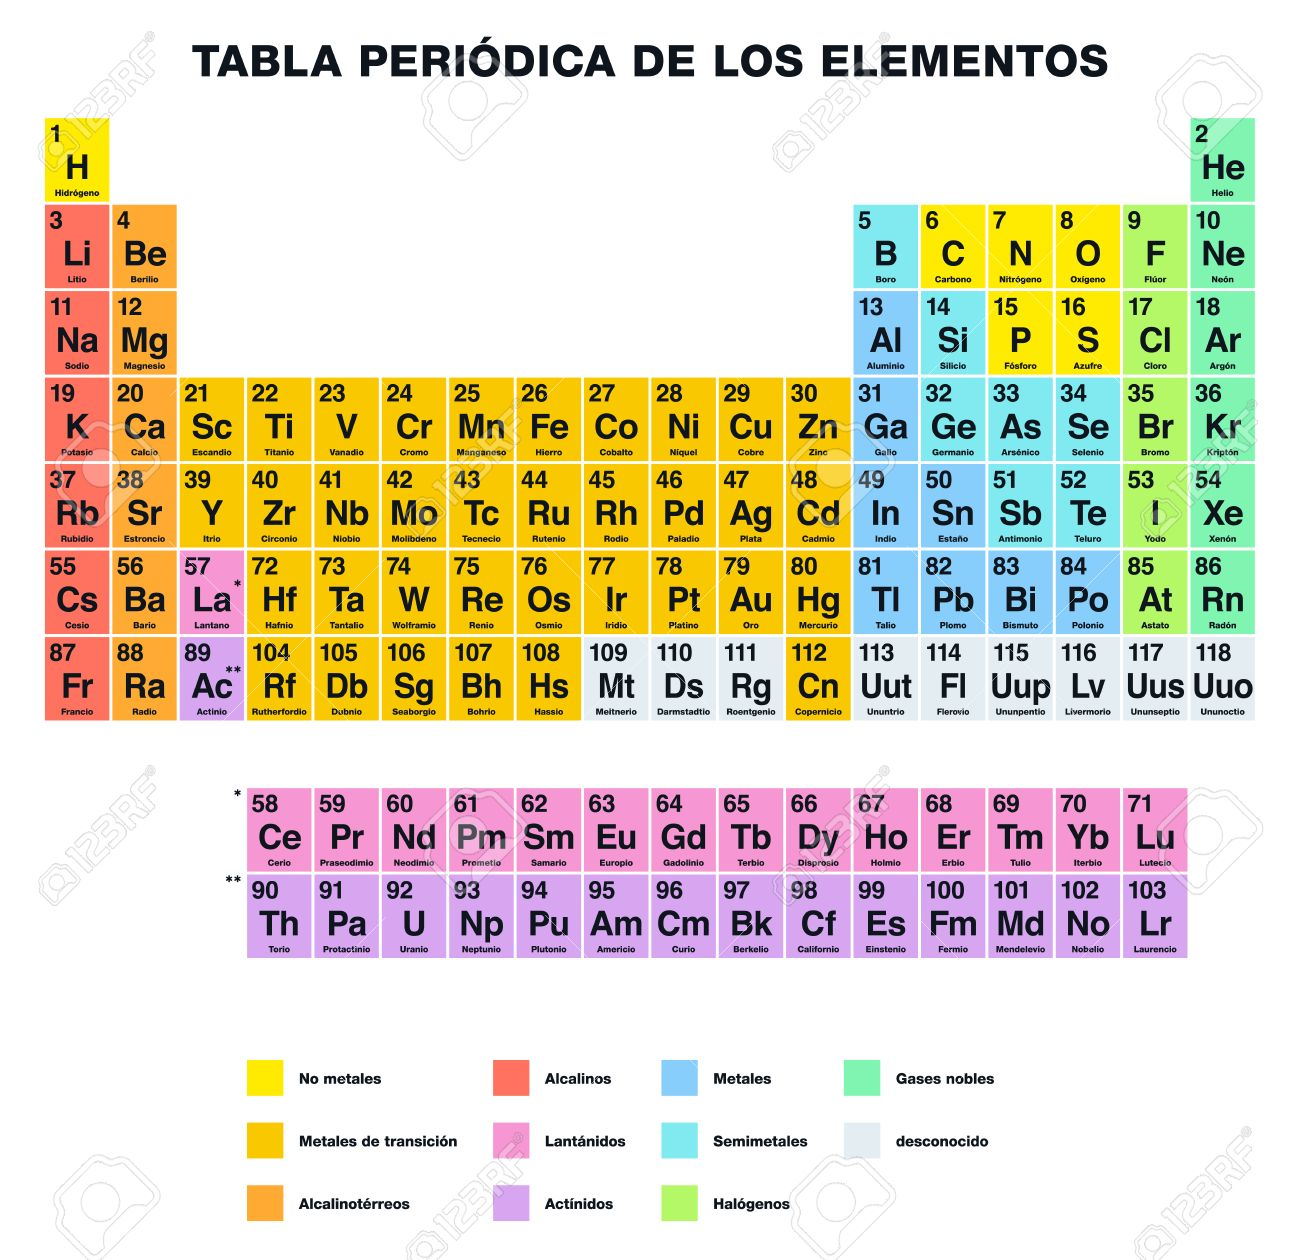 Pb in the periodic table images periodic table images pb in the periodic table images periodic table images pb in the periodic table gallery periodic gamestrikefo Choice Image